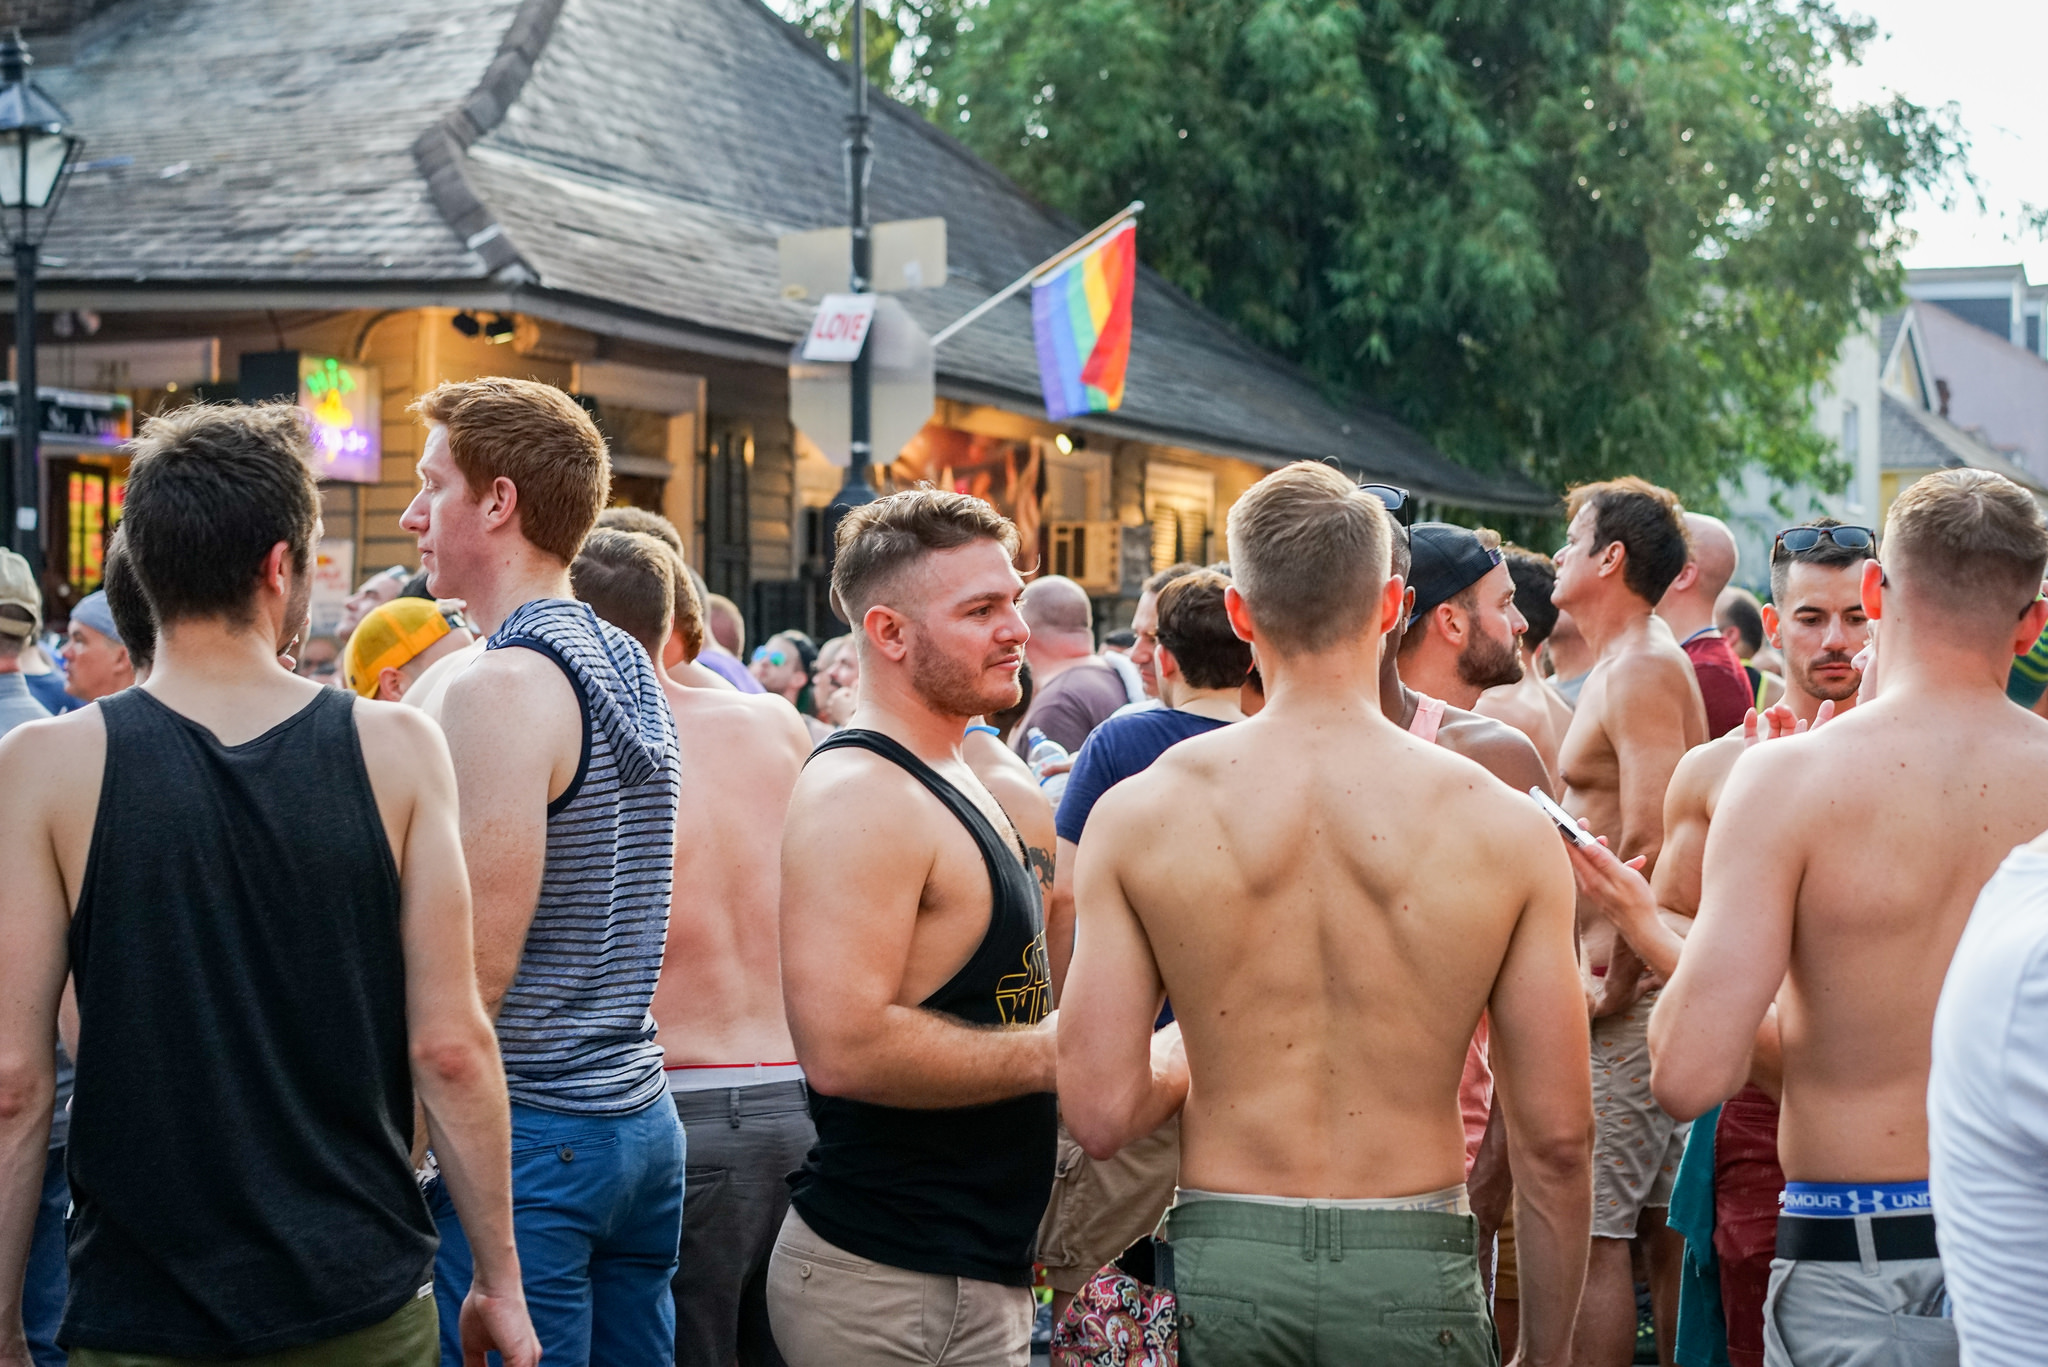 opinion gay muscle men pissing interesting idea.. remarkable